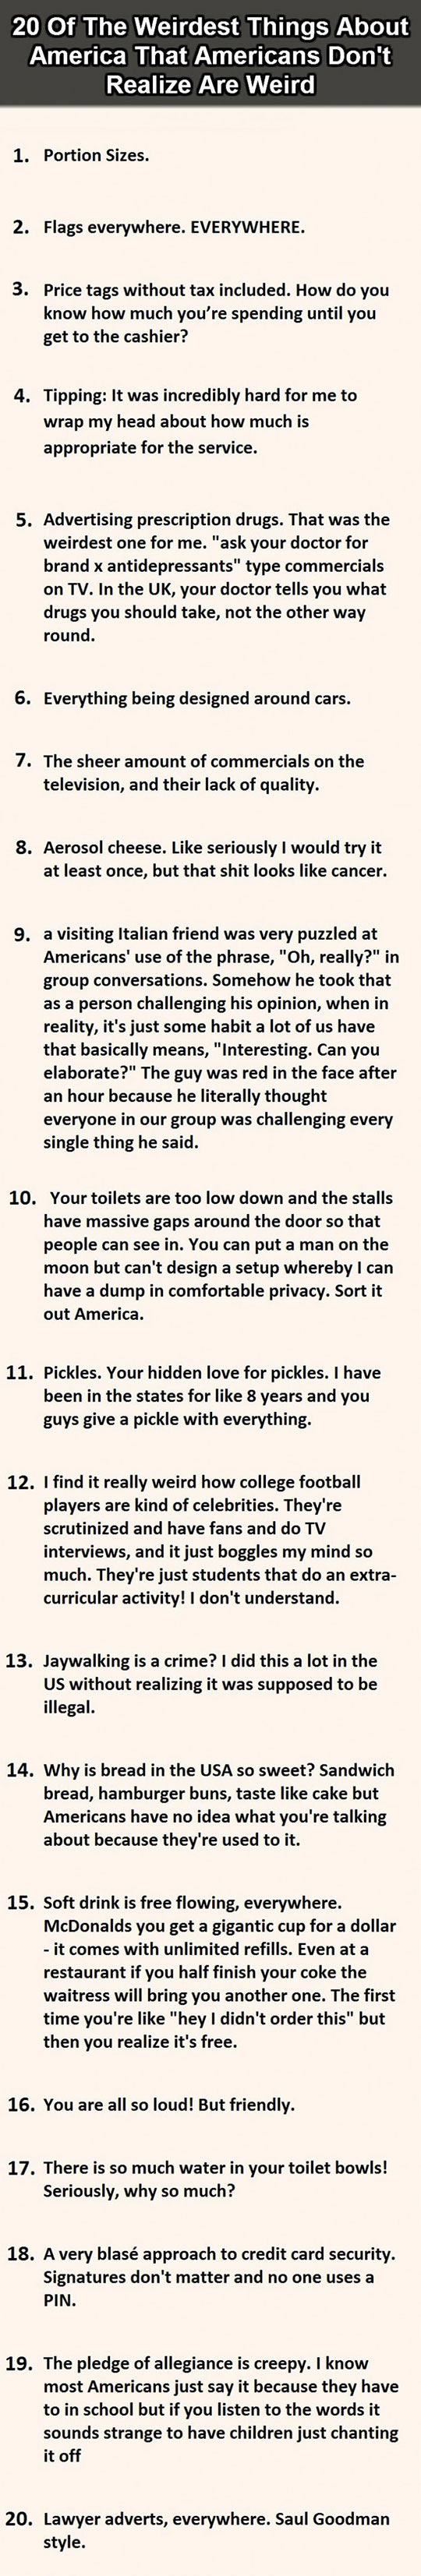 The Weirdest Things About America